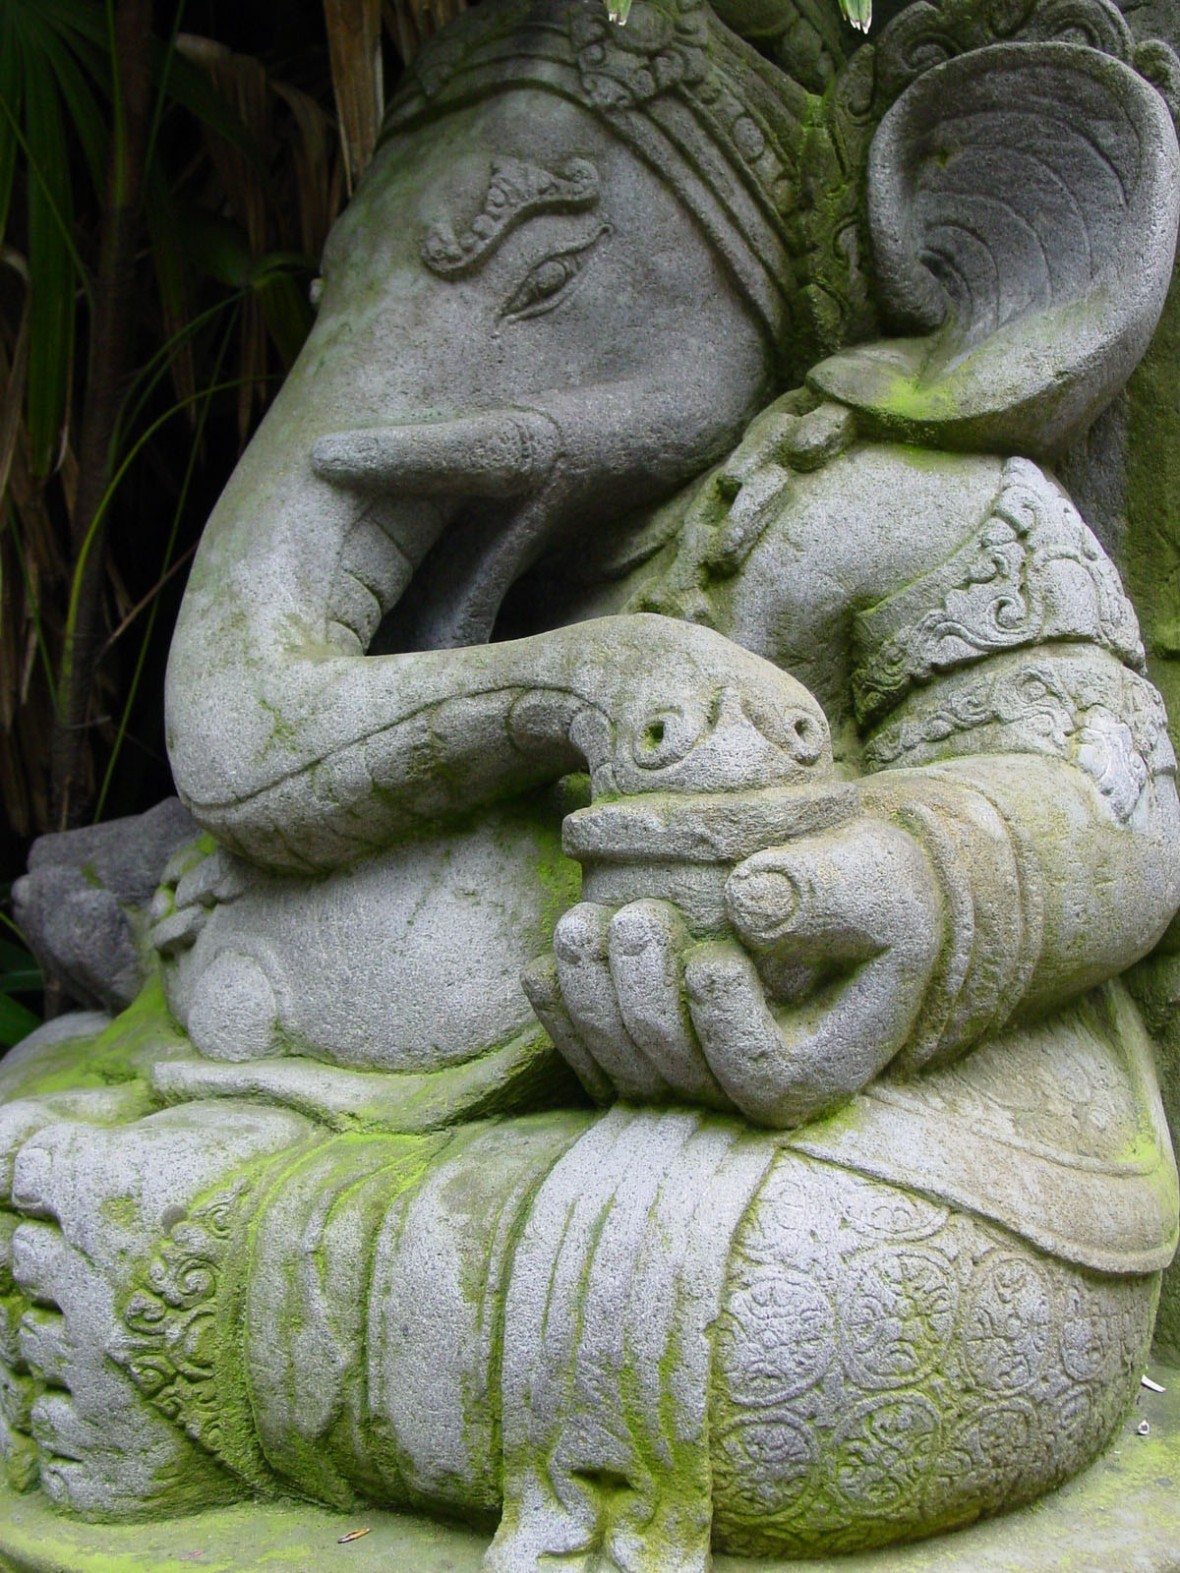 Ganesha statue with moss